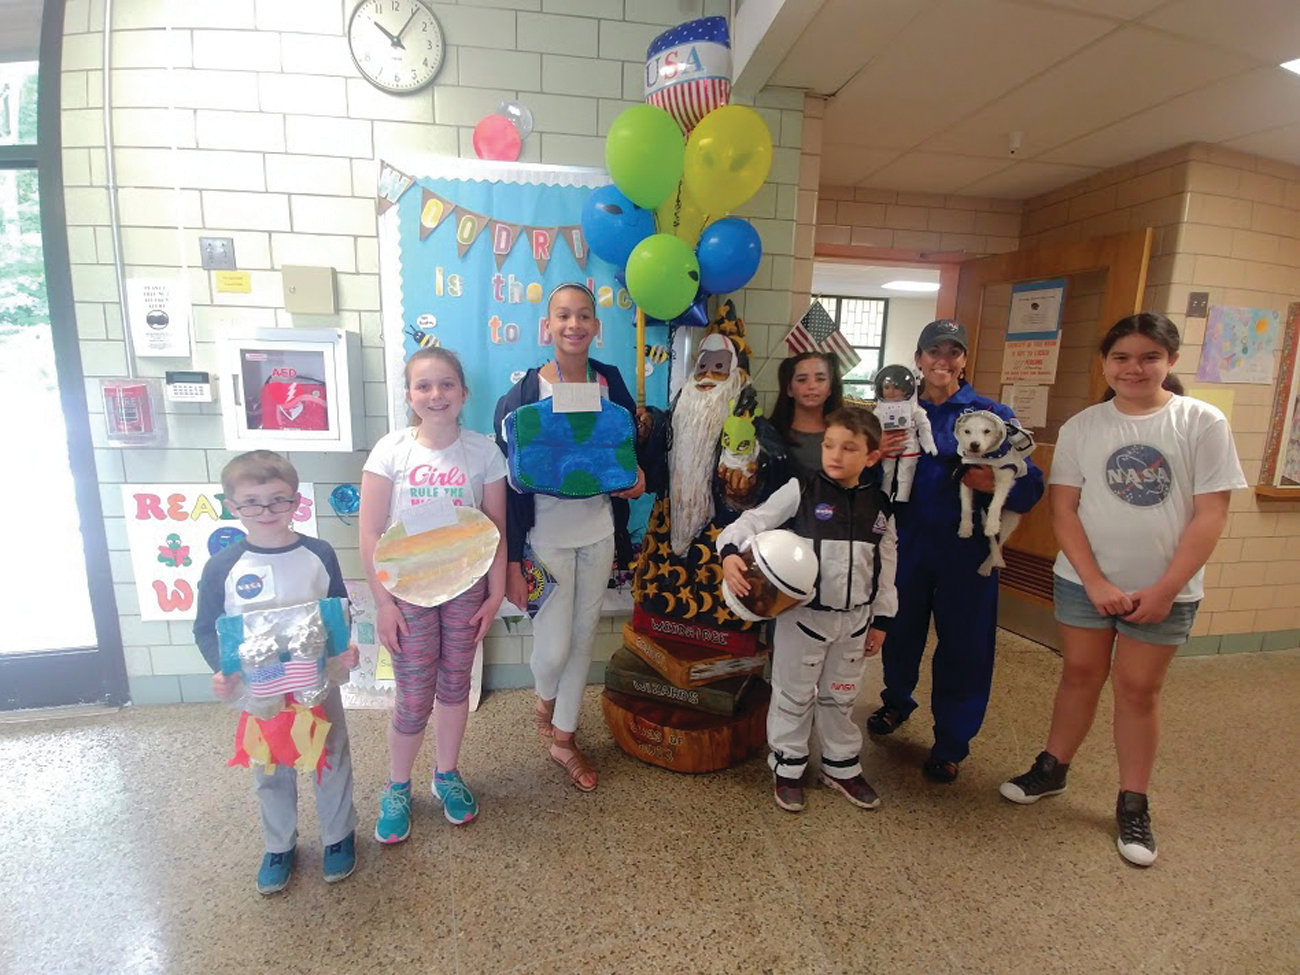 A FEW SPACE FANS: Woodridge students Katelyn Snedeker, Natalia Jackson, Tyler Parente, Lilliana Prendergast, Giana Giordano and Russell Pine showed off their enthusiasm for the space theme with Gamba and Astro-Dash.